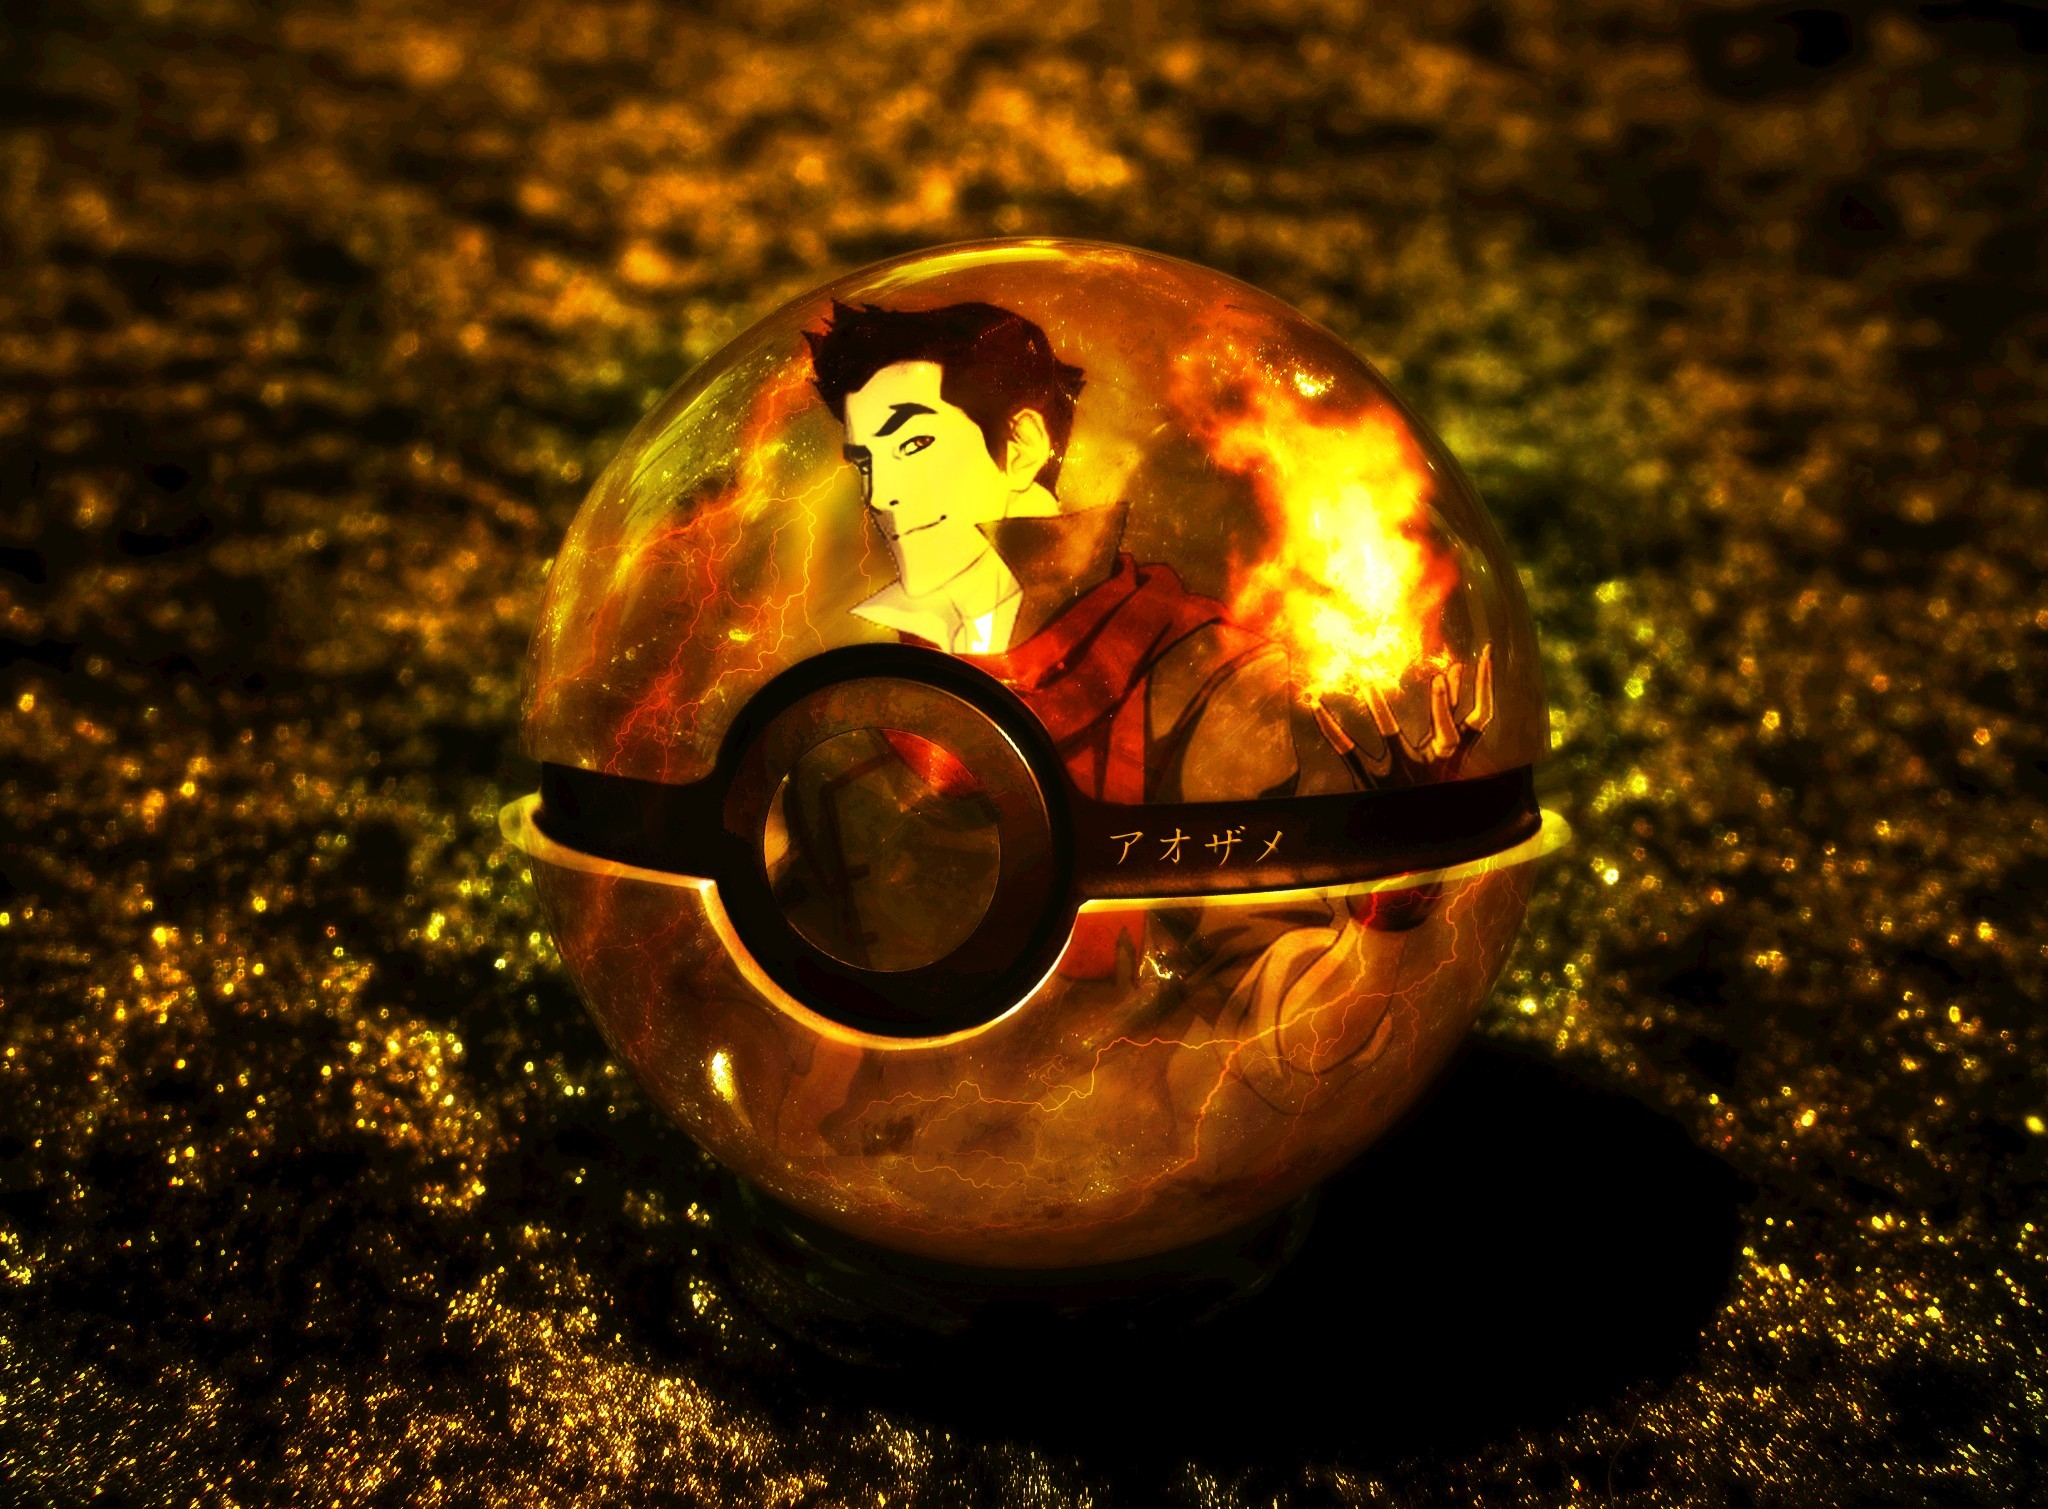 Digital Art Artwork 3d Fan Mako Pokeball Wallpaper Allwallpaper In